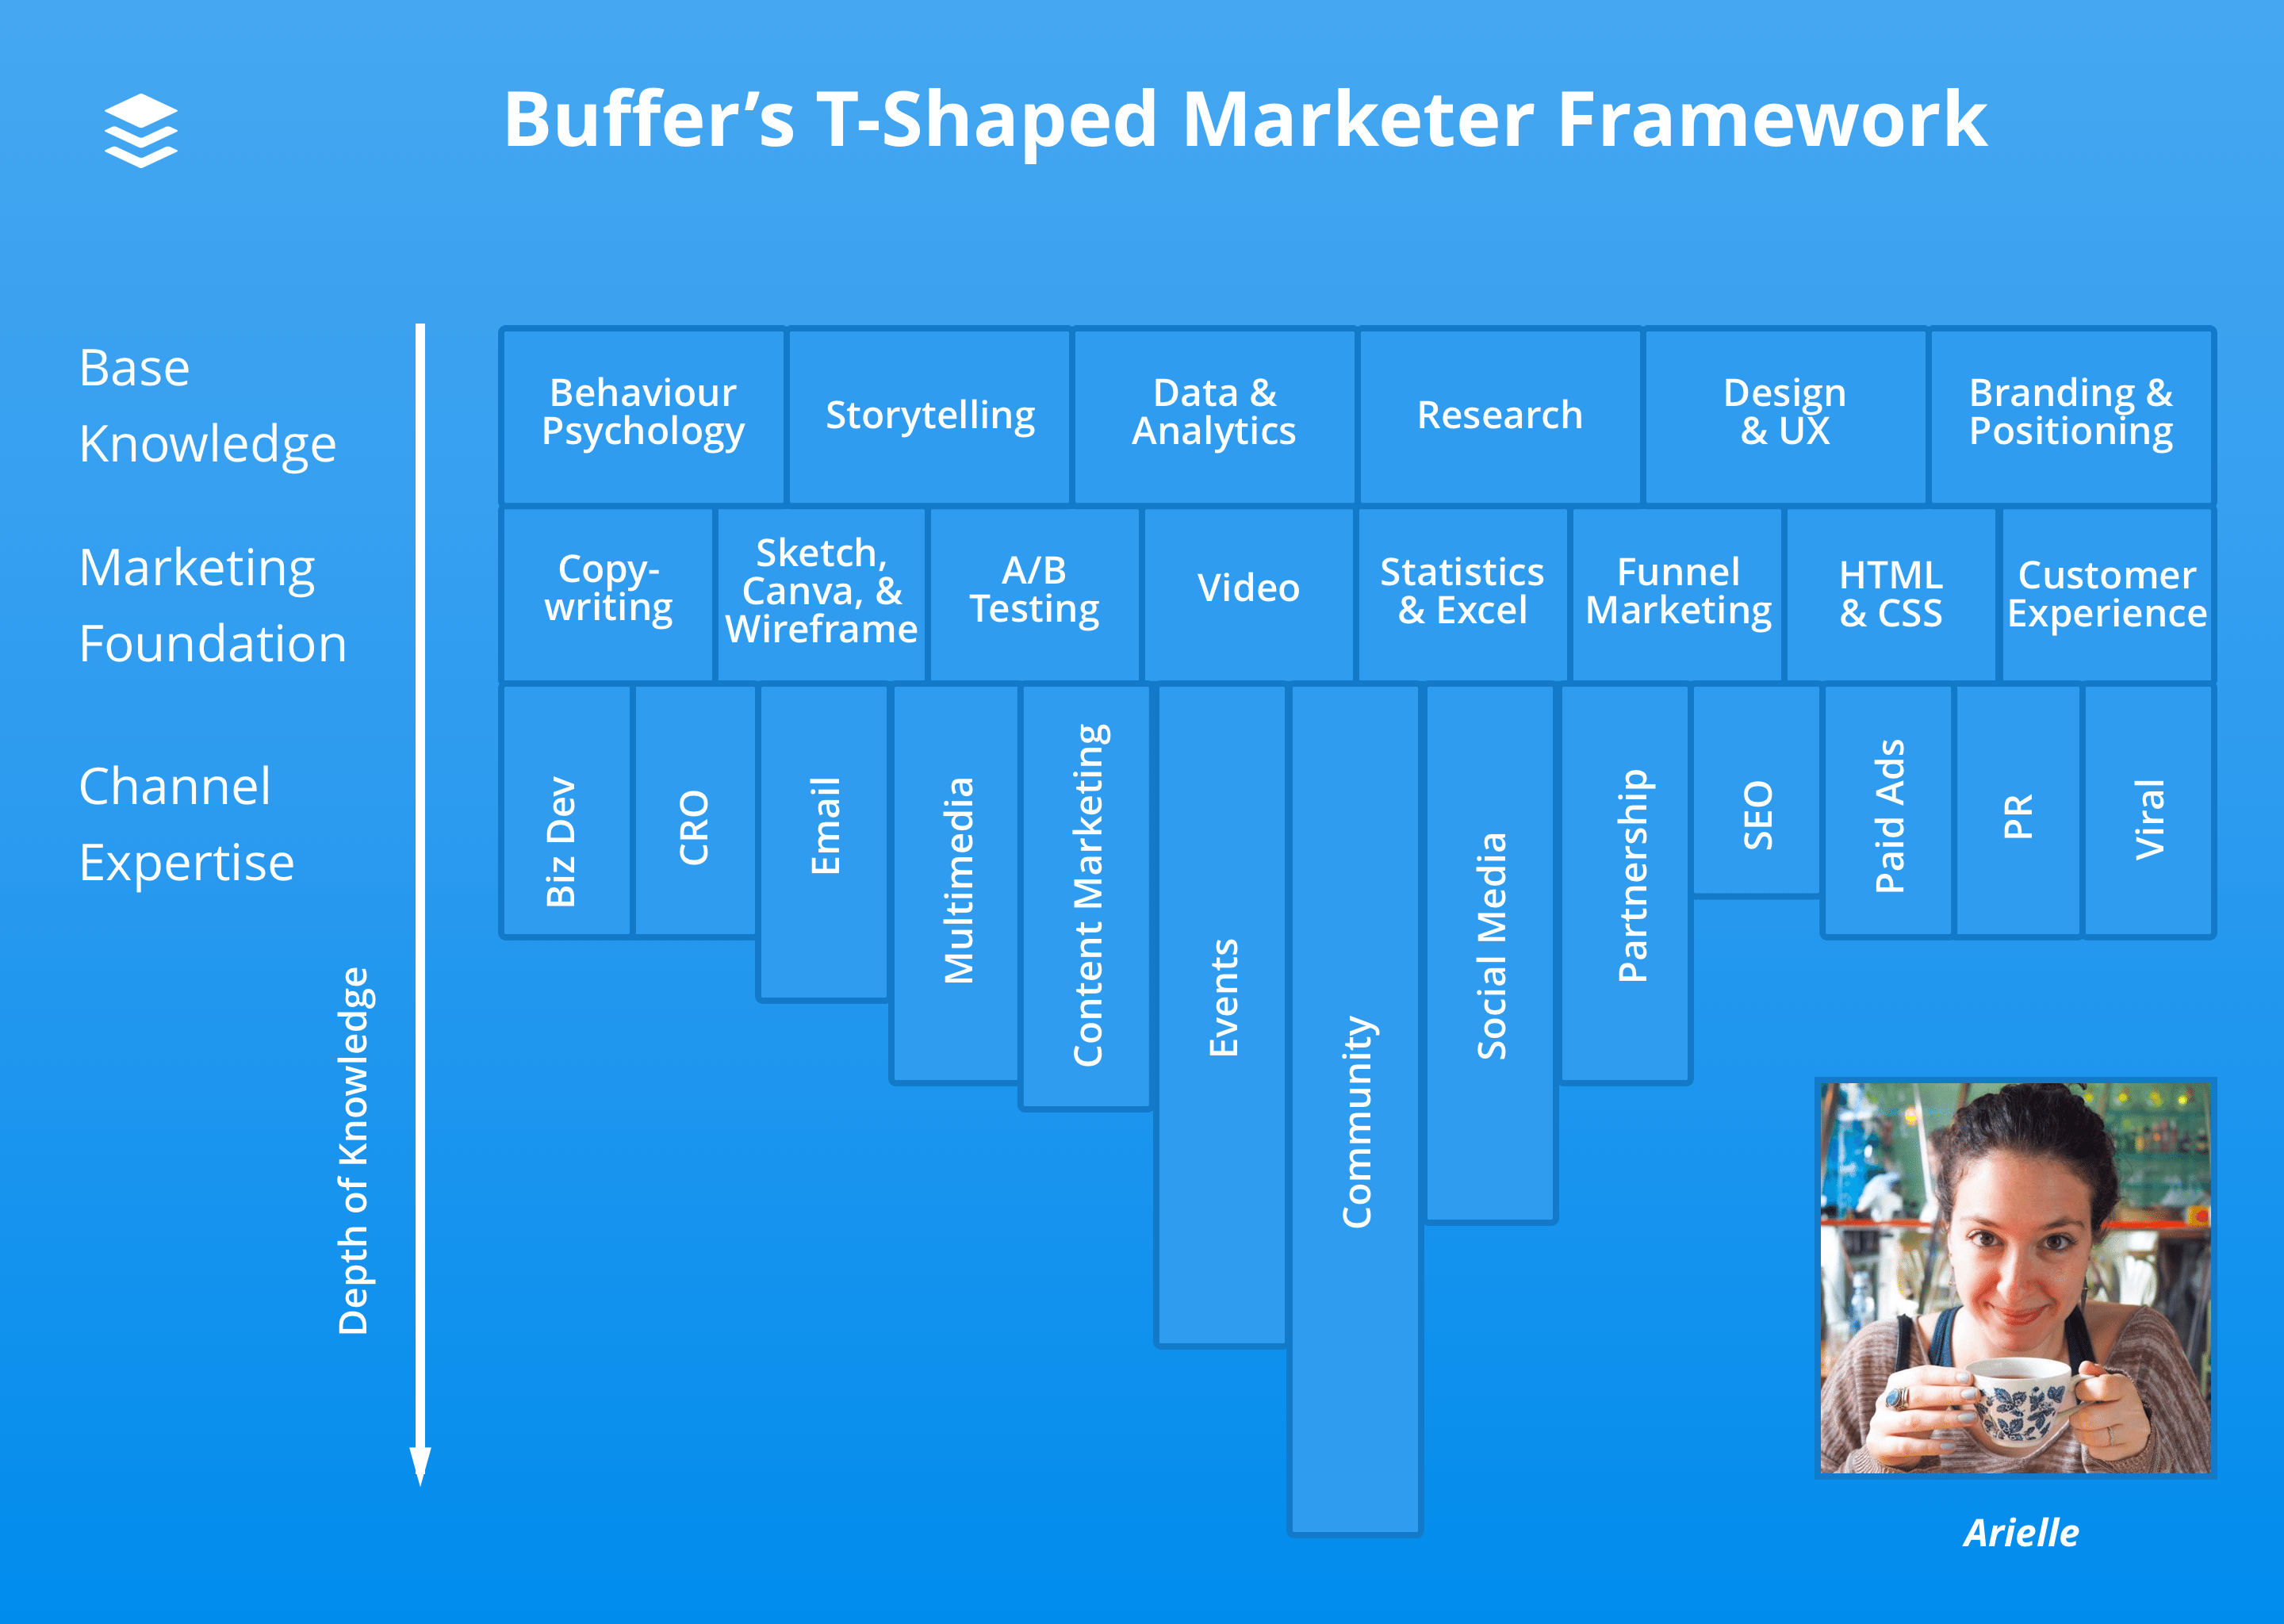 Arielle T-shaped marketer diagram